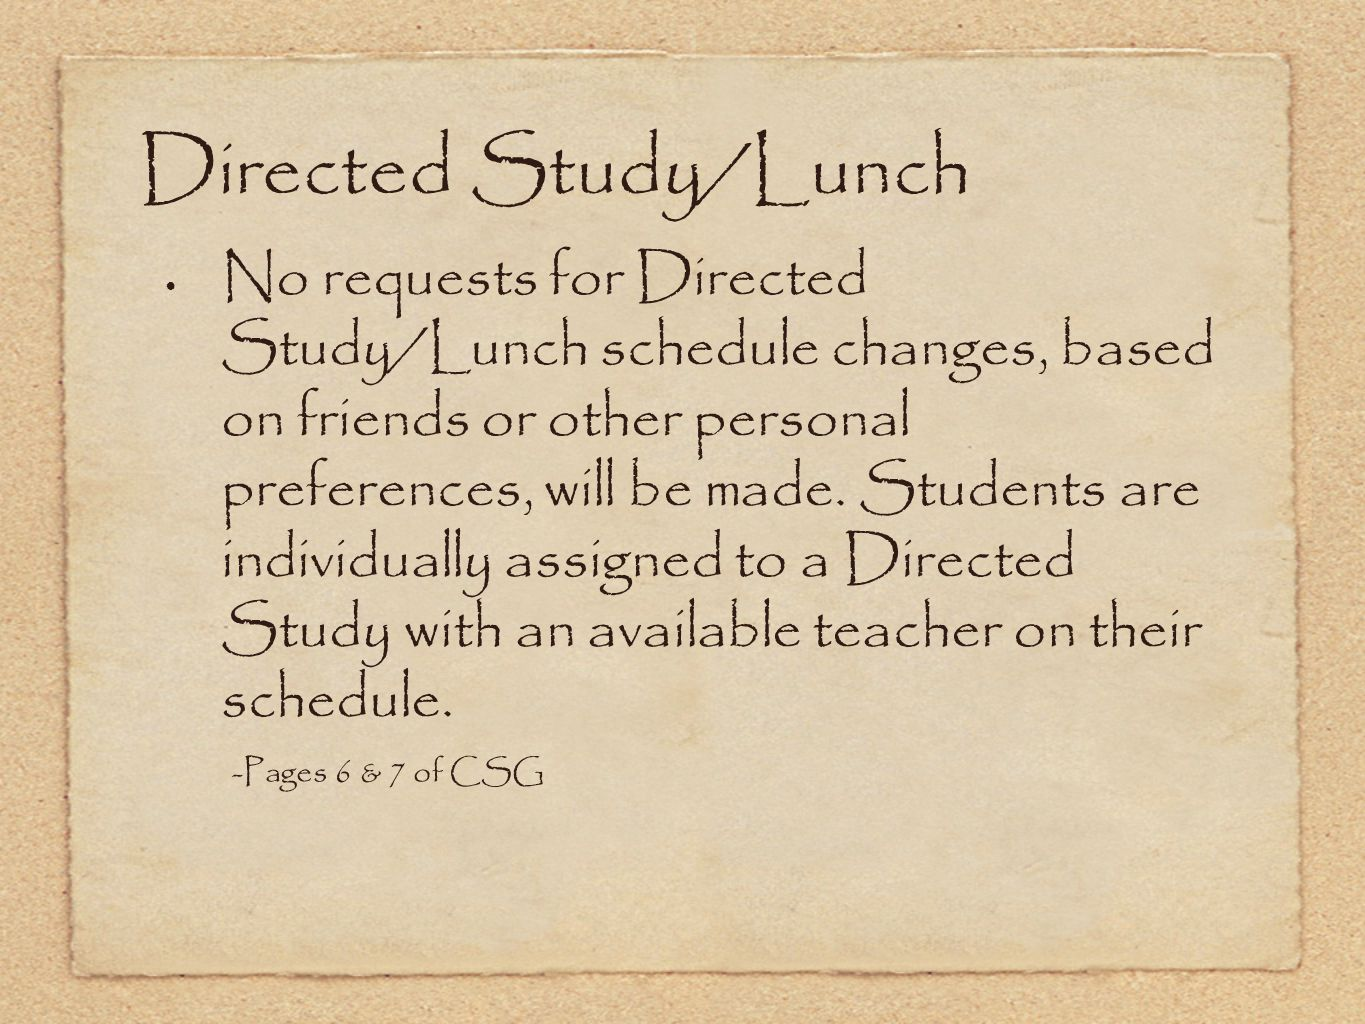 Directed Study/Lunch No requests for Directed Study/Lunch schedule changes, based on friends or other personal preferences, will be made. Students are